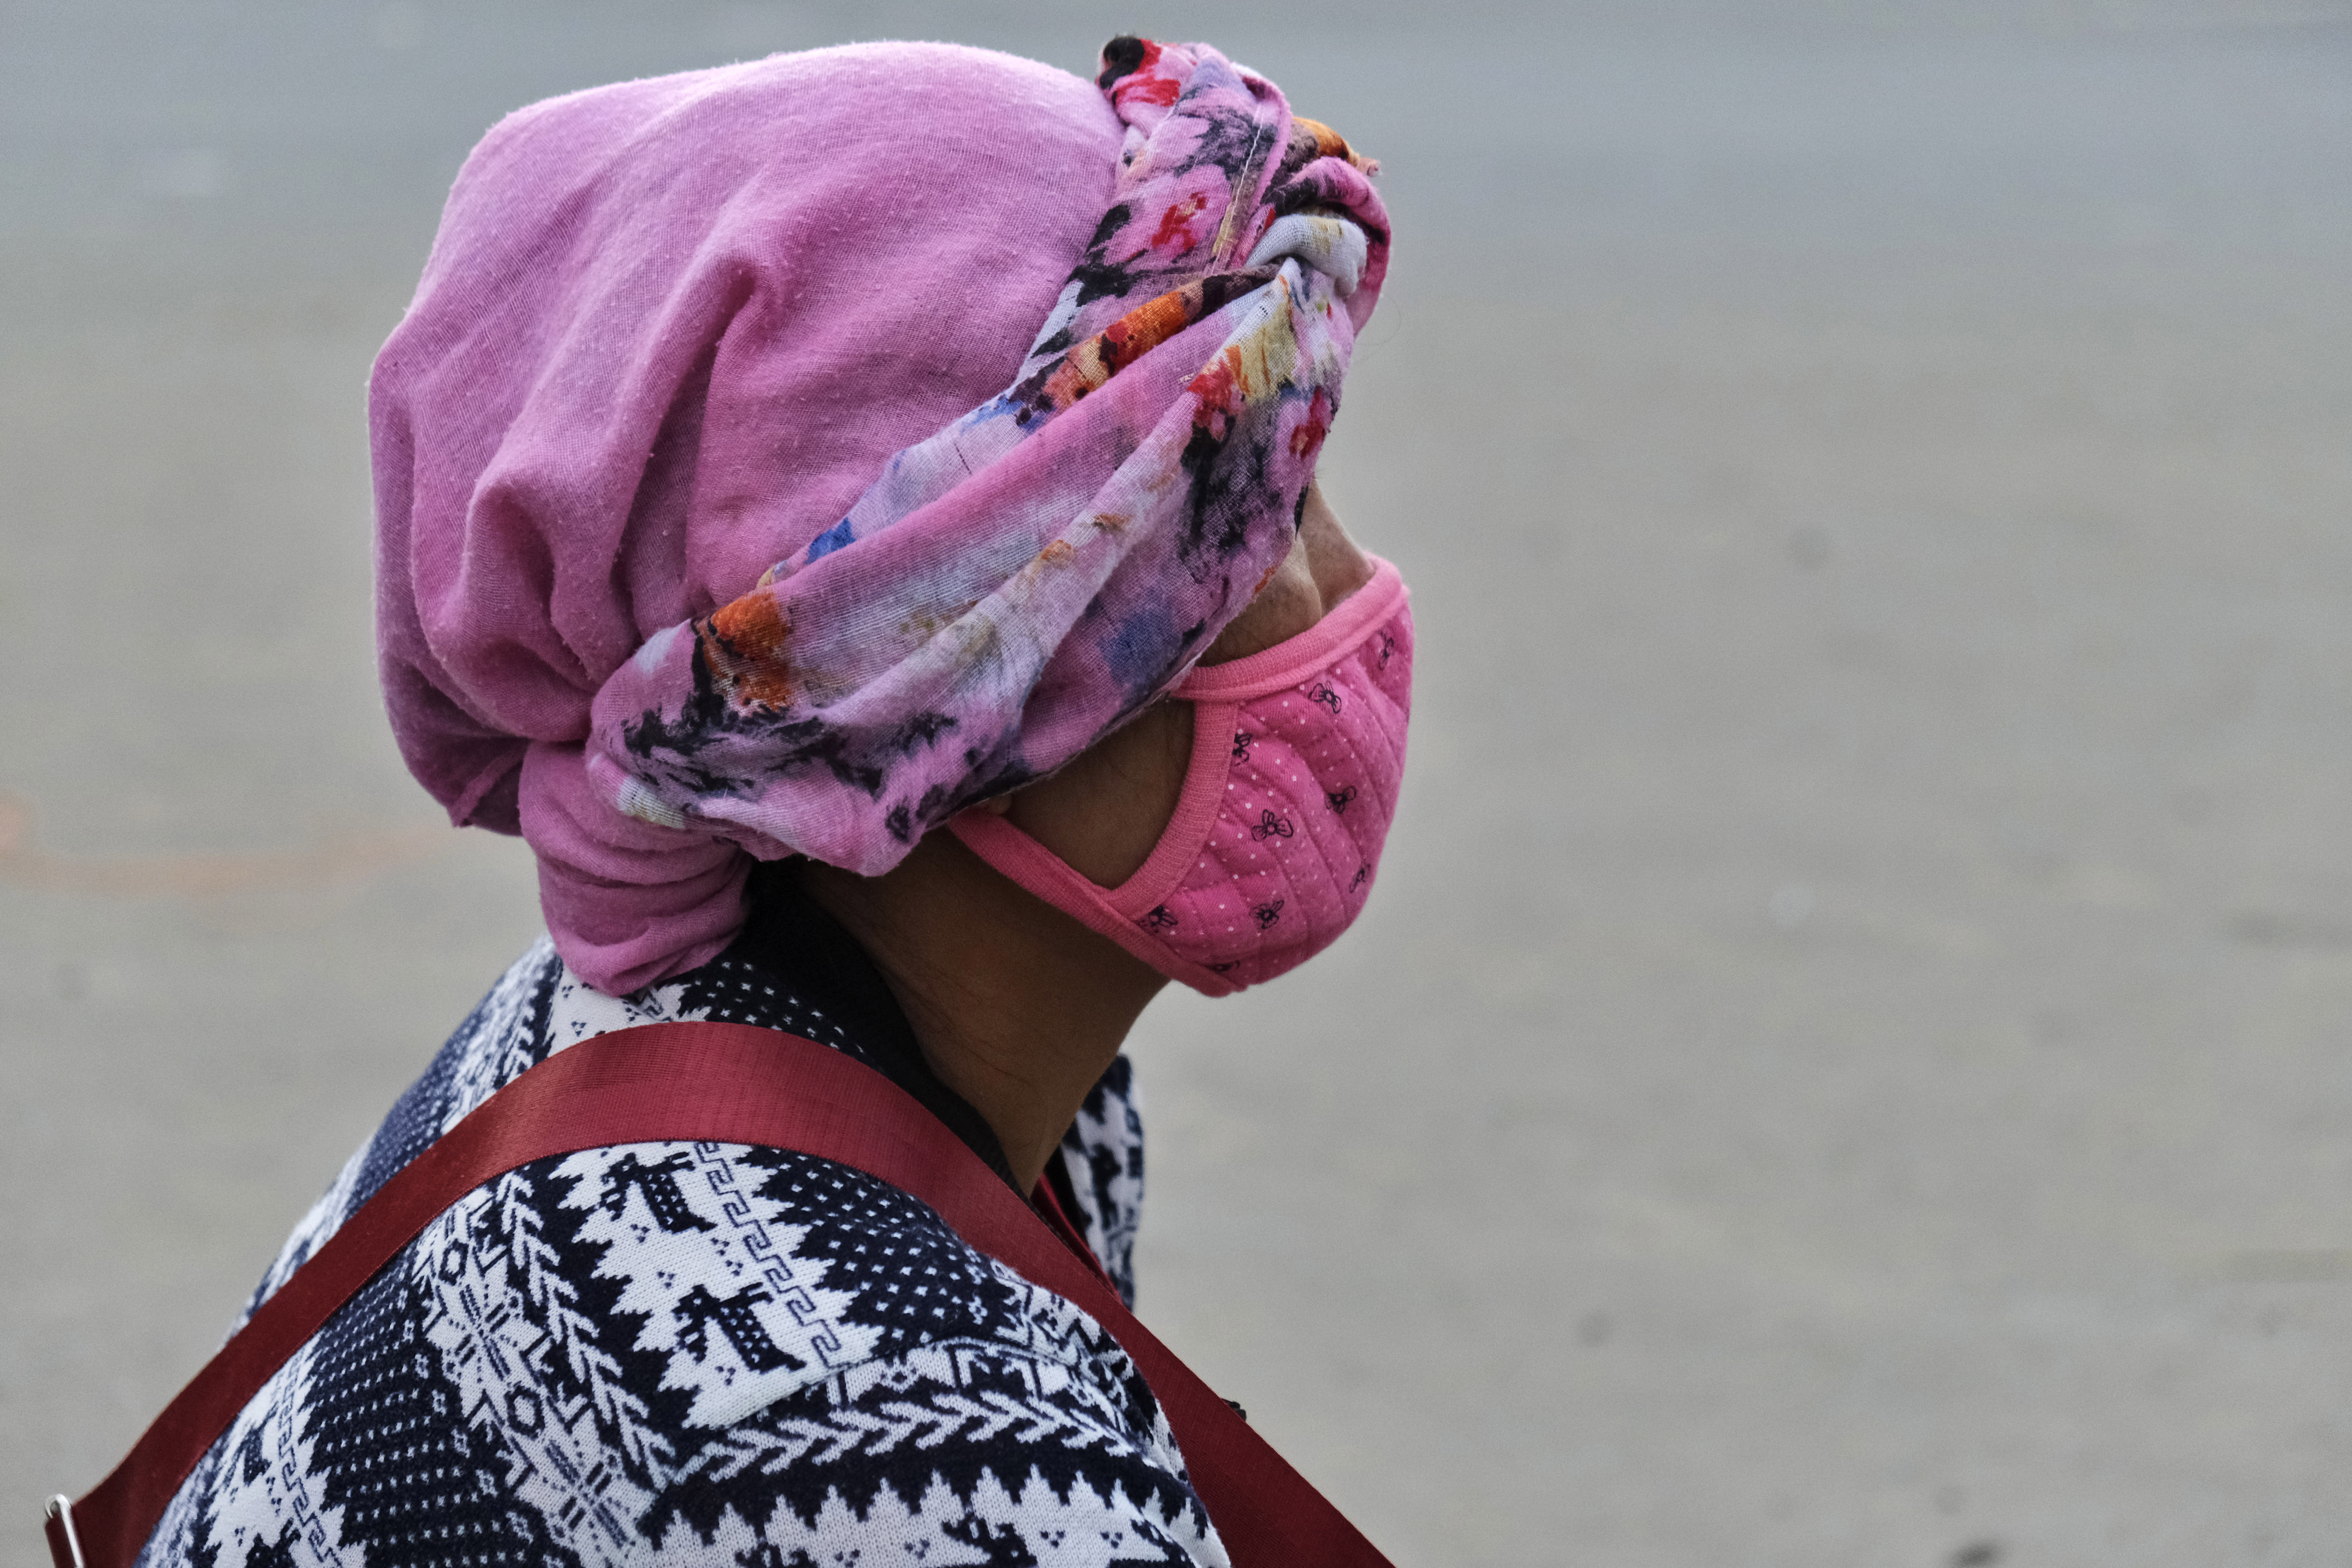 A Naga woman wears a face mask and sits by the side of a road selling poultry in Kohima, capital of the northeastern Indian state of Nagaland, Saturday, Aug. 8, 2020. As India hit another grim milestone in the coronavirus pandemic on Friday, crossing 2 million confirmed cases and more than 41,000 deaths, community health volunteers went on strike complaining they were ill-equipped to respond to the wave of infection in rural areas. (AP Photo/Yirmiyan Arthur)